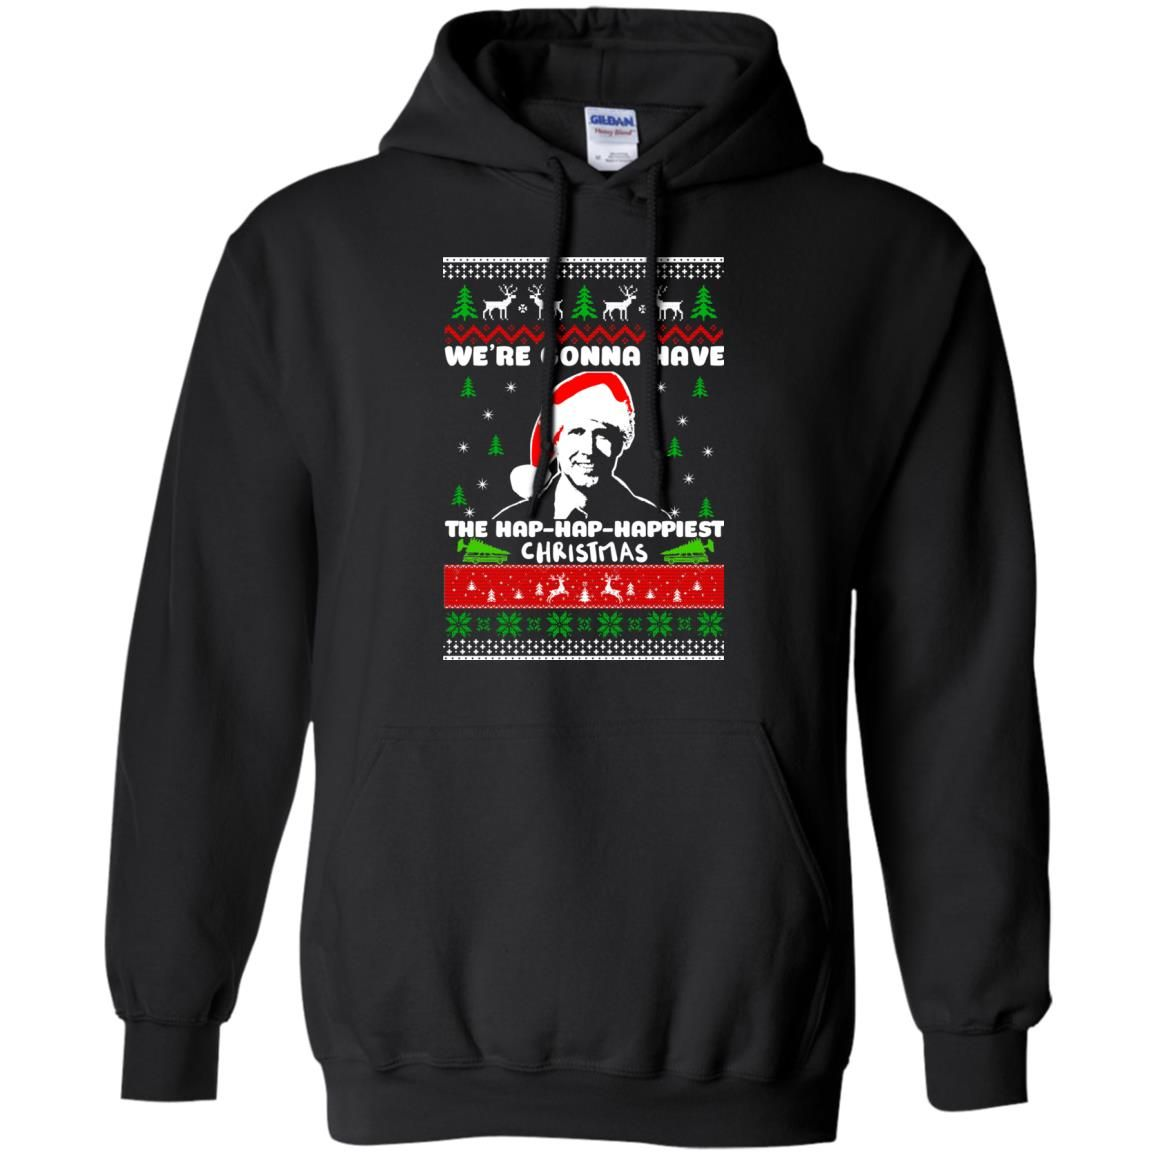 image 1745 - Christmas Vacation: We're gonna have the Hap-Hap-Happiest Christmas sweater, hoodie